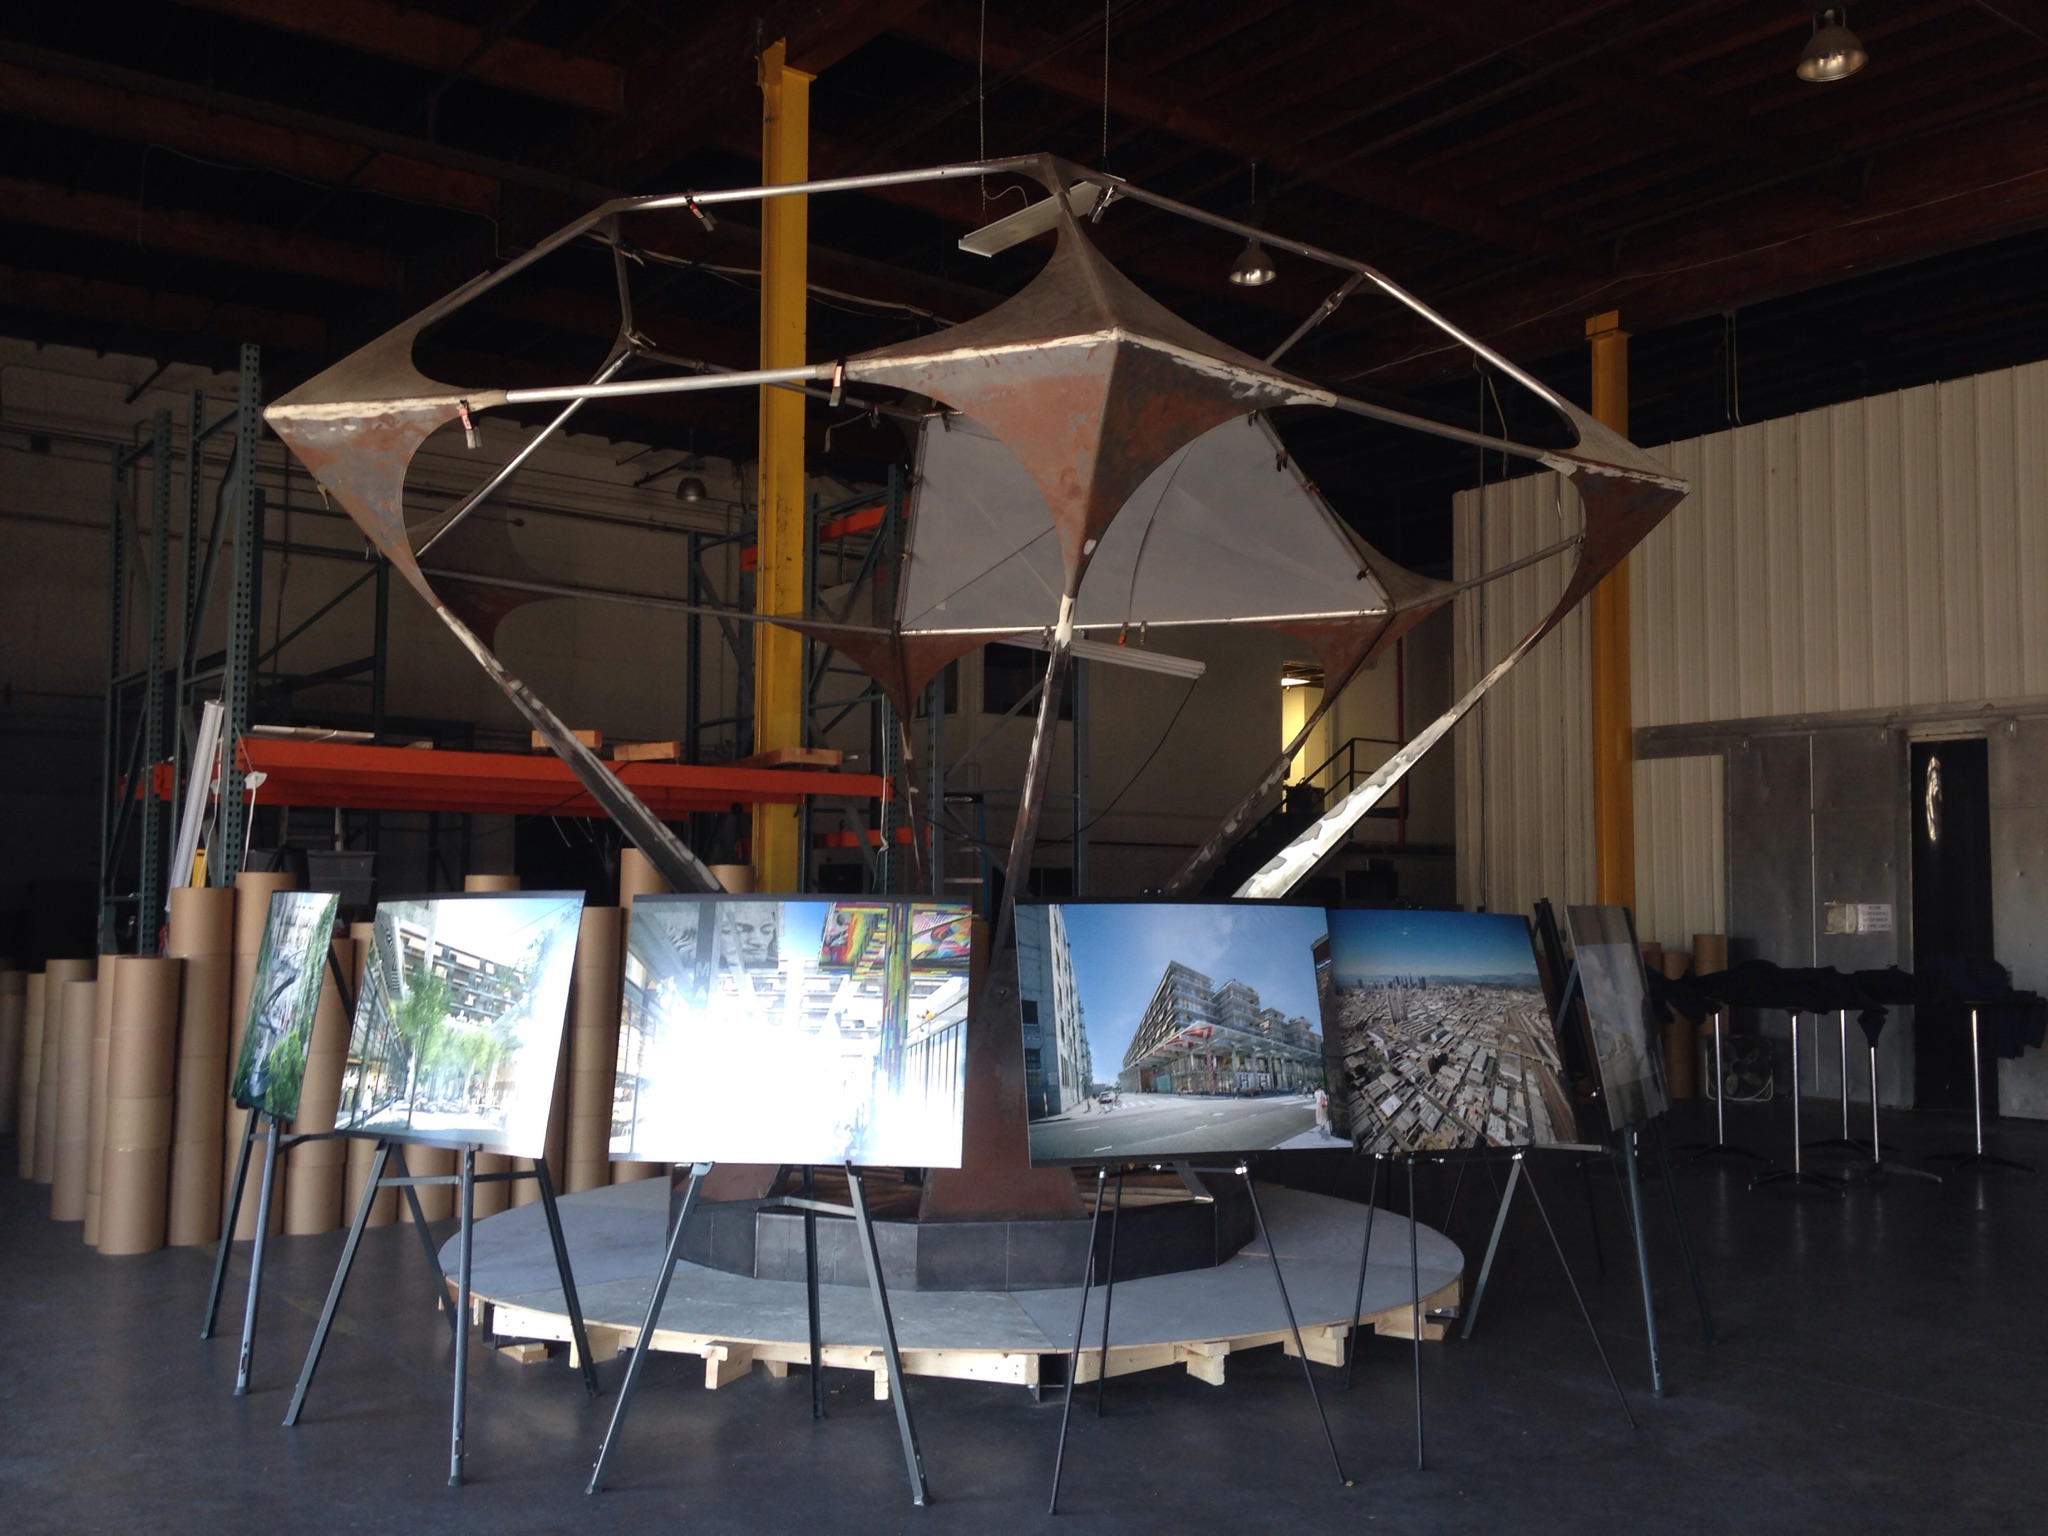 Renderings of 6am on display in the alameda/6th warehouse (photo: Frances Anderton)